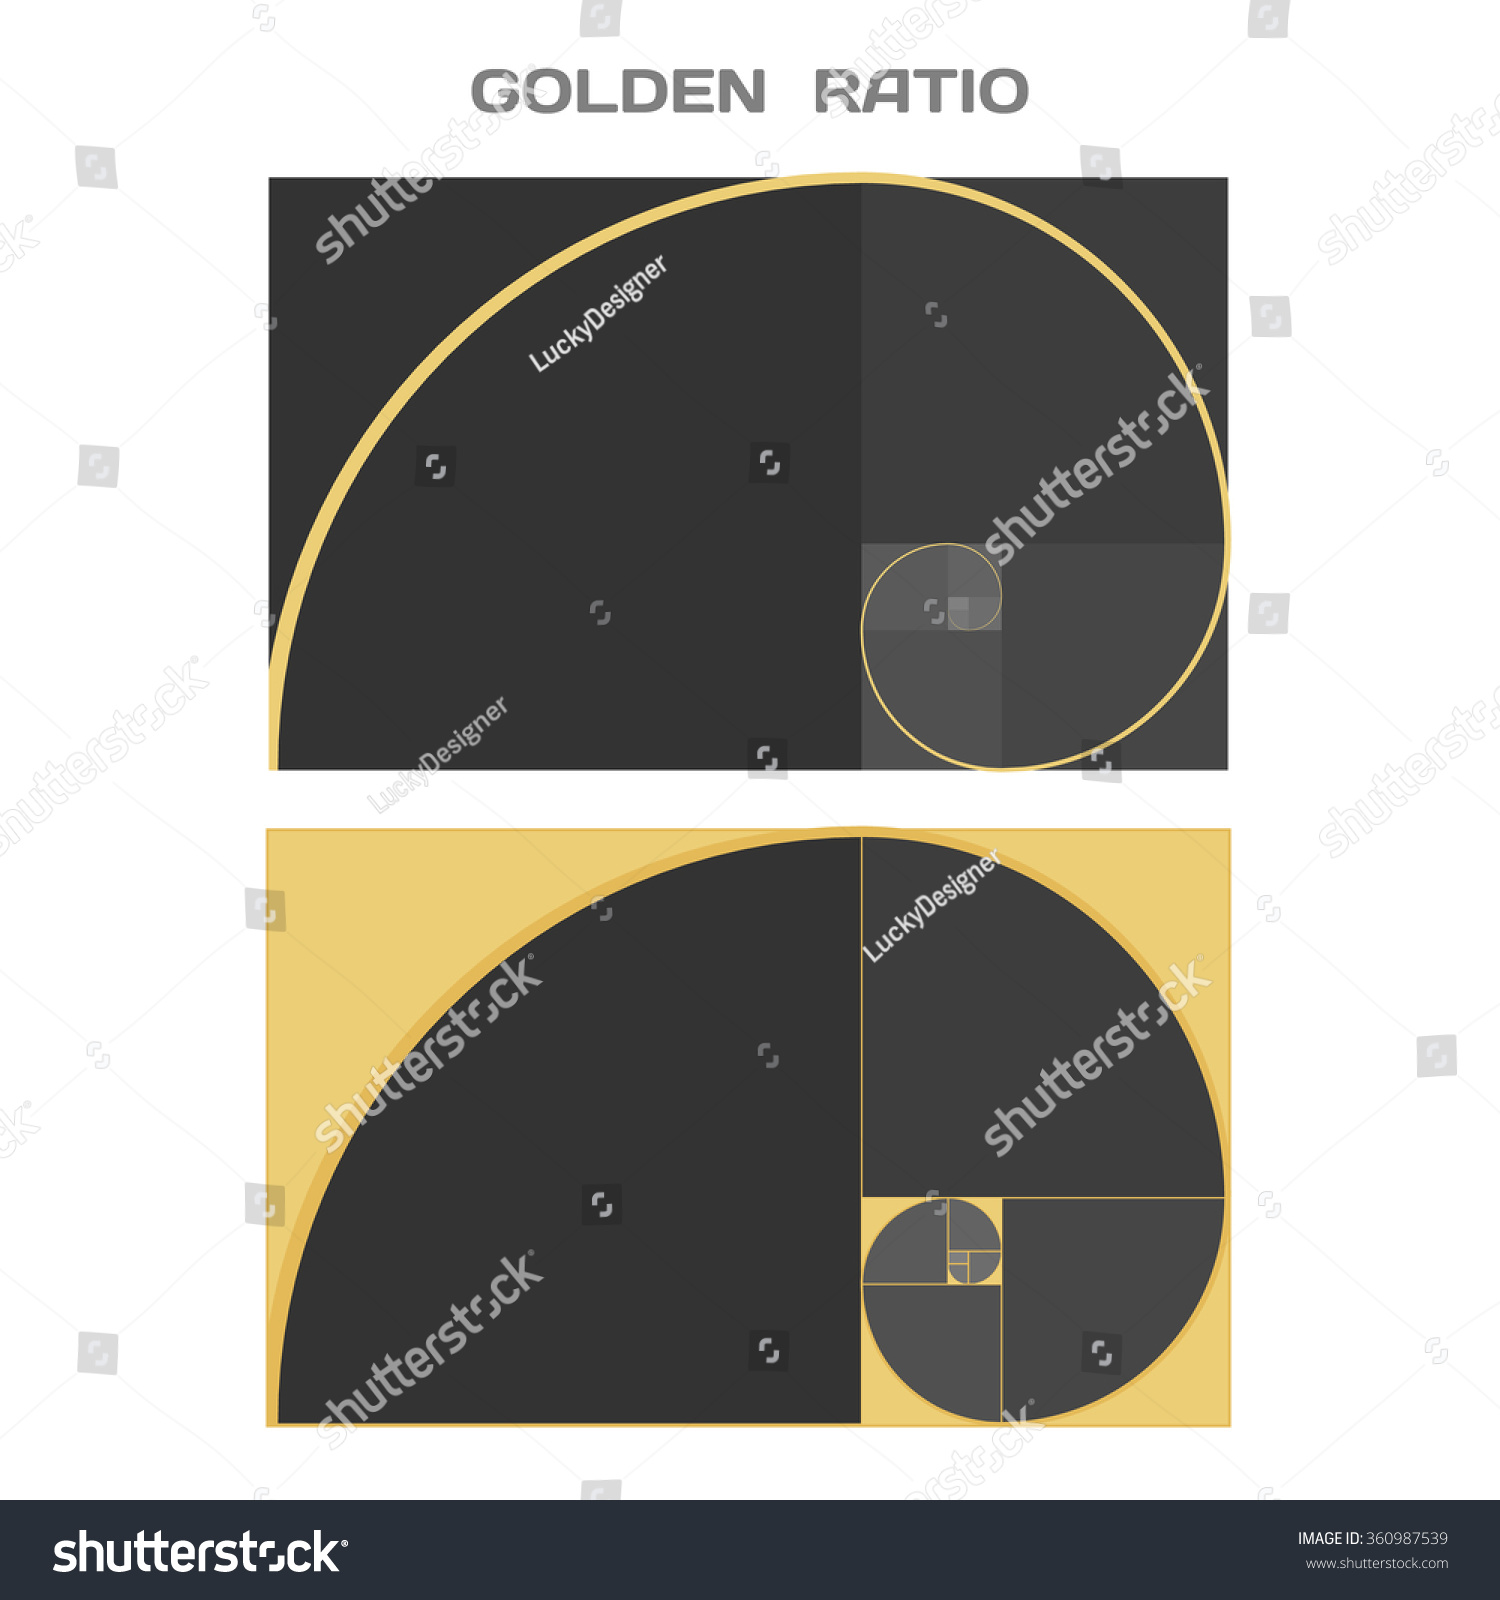 an ideal golden ratio project Welcome to the home page for our final project the golden ratio.